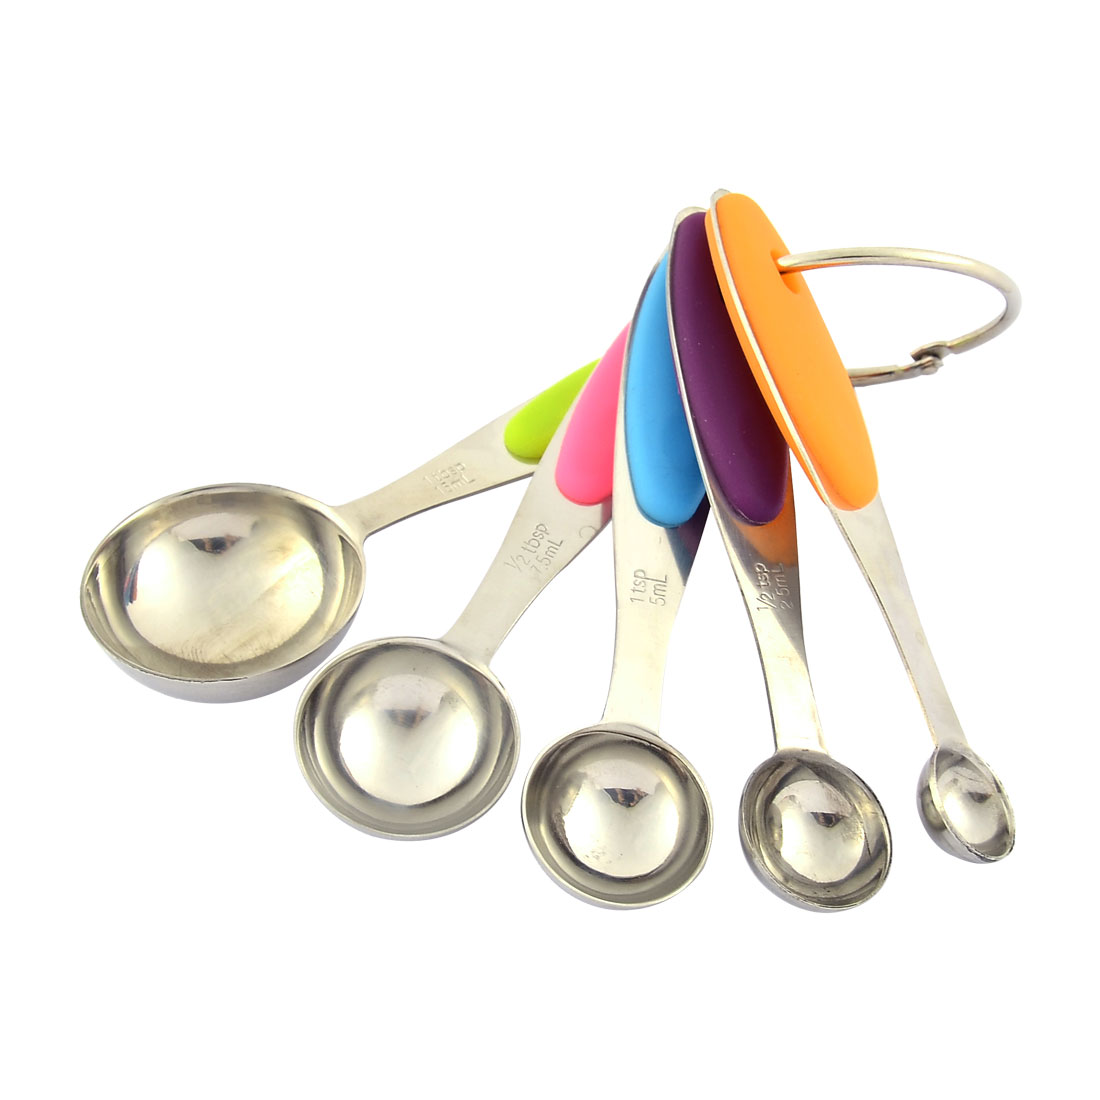 Rubber Coated Handle Tea Soup Coffee Measuring Spoon Set w Hanging Ring